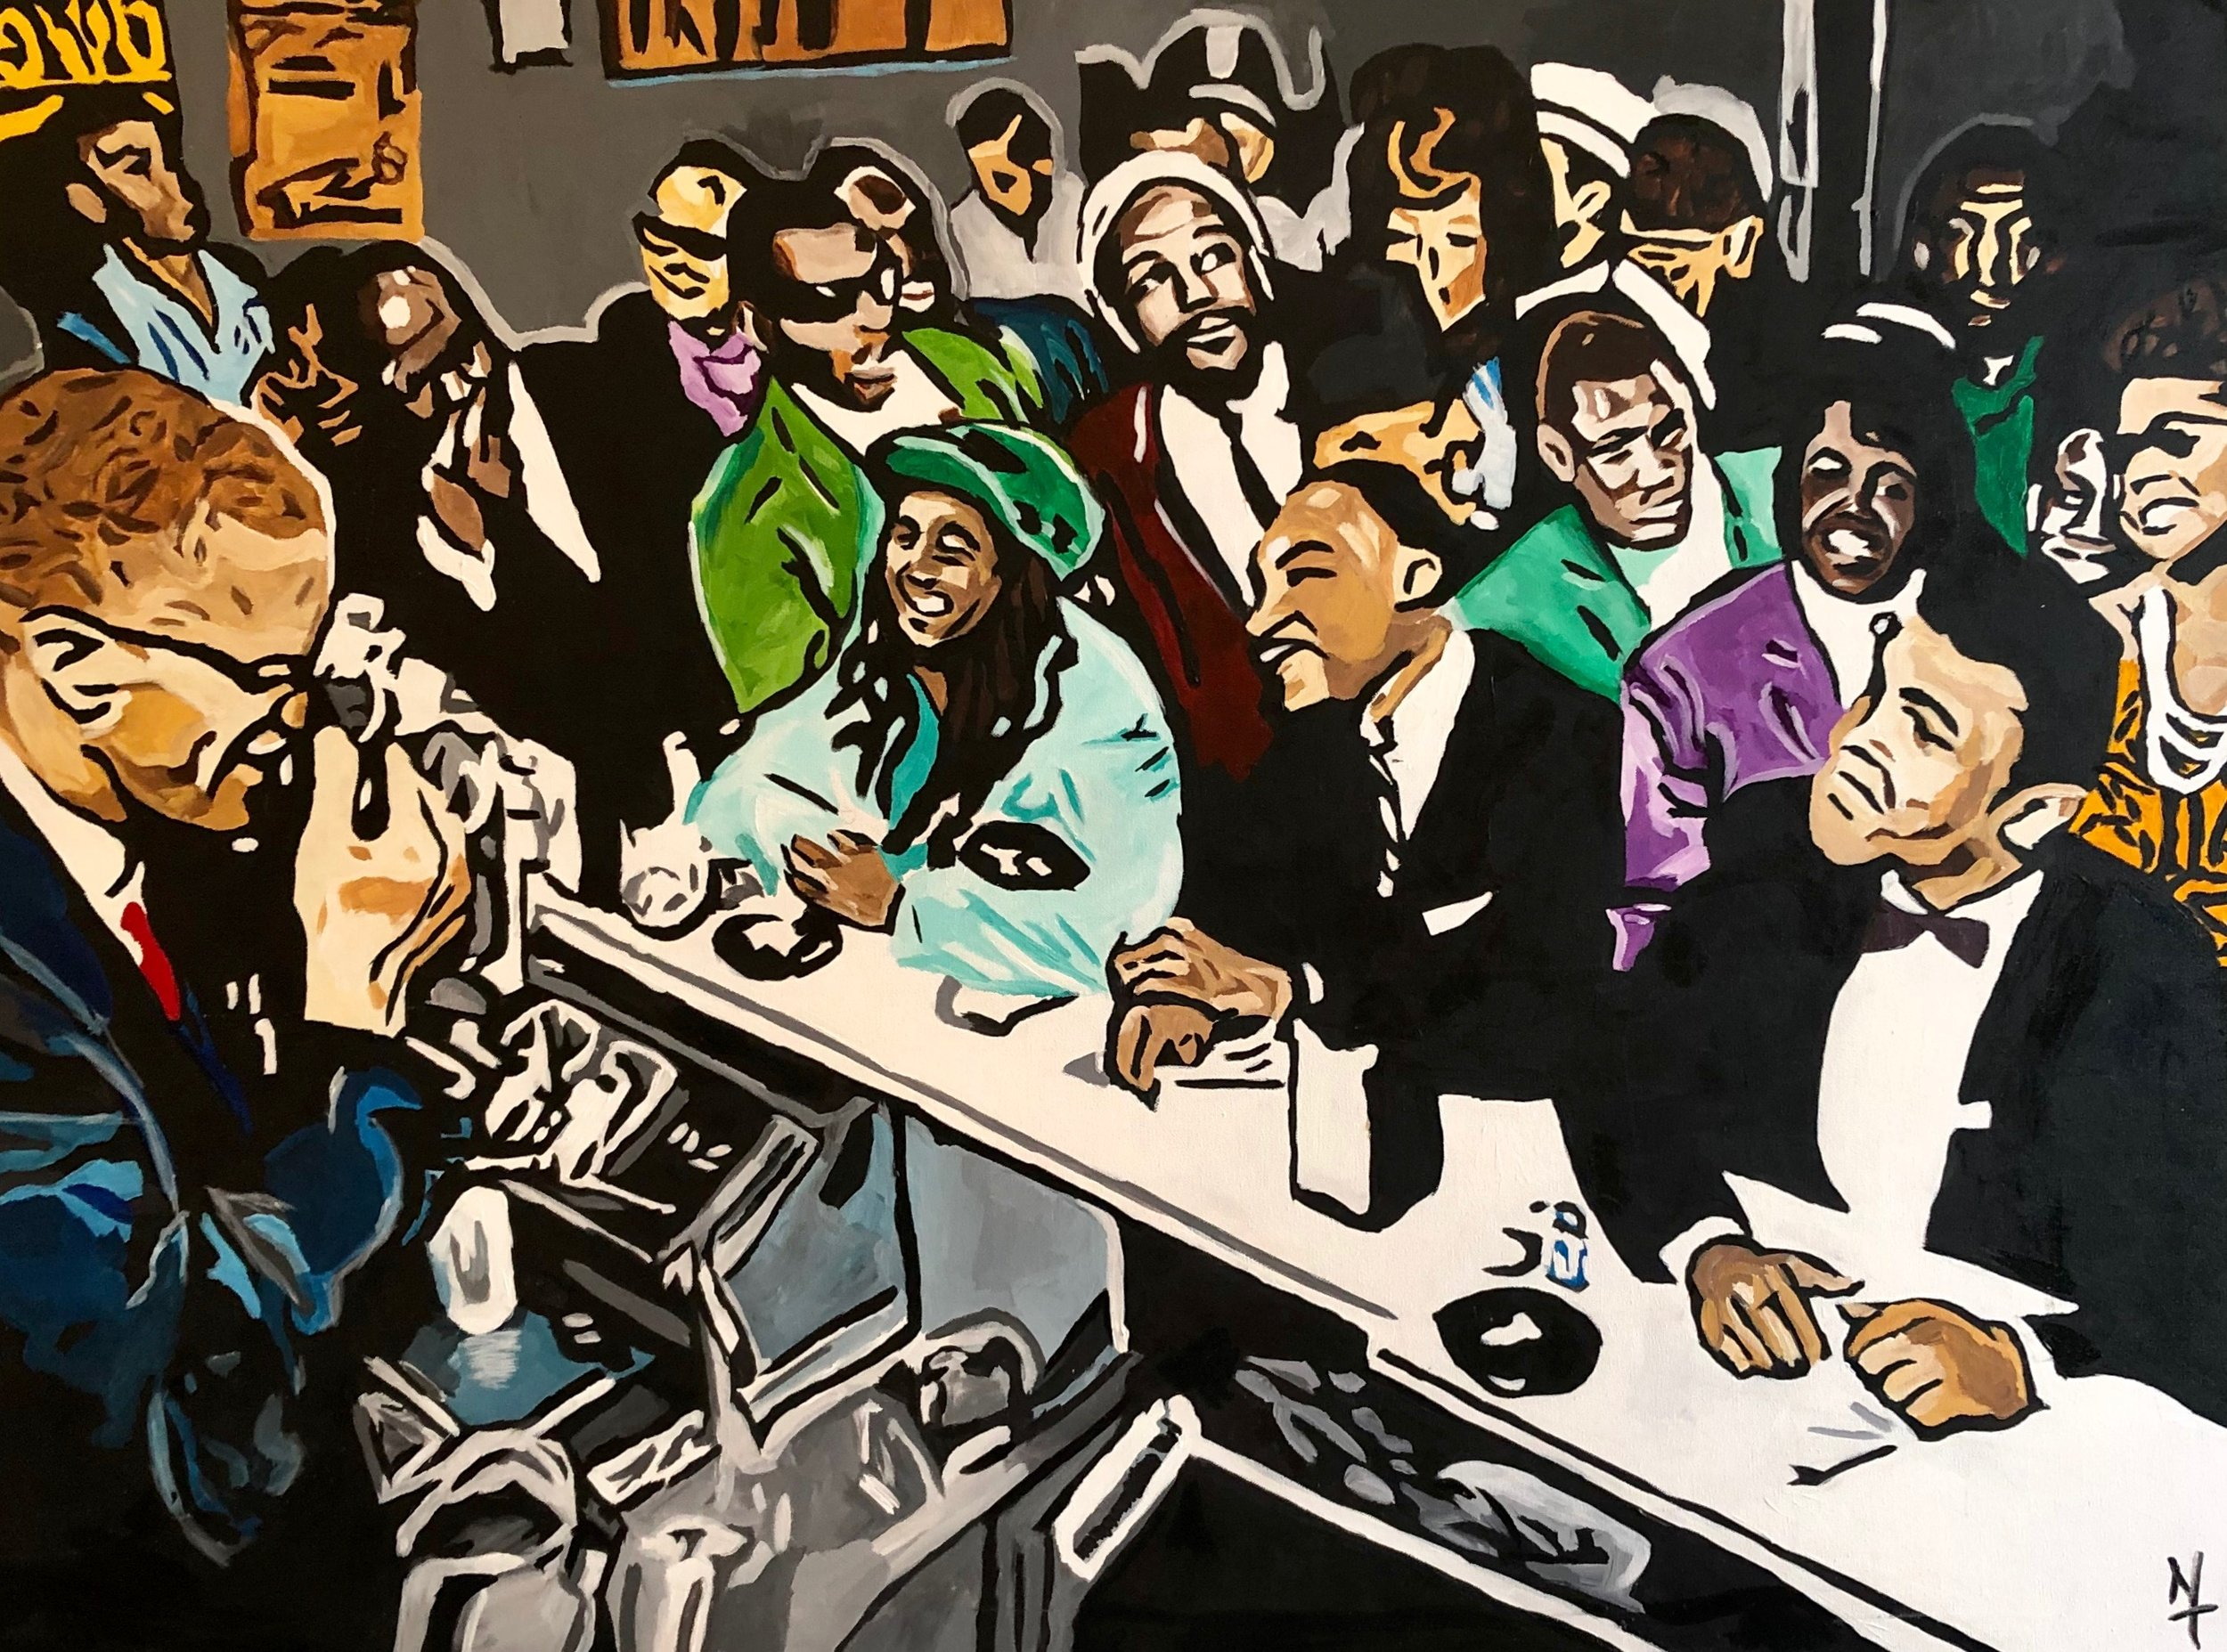 lunchtime in heaven - Nai Turner36x48Acrylic PaintA ONE OF ONE PIECE. CERTIFICATE OF AUTHENTICATION PROVIDED.Contact Artist To Purchase